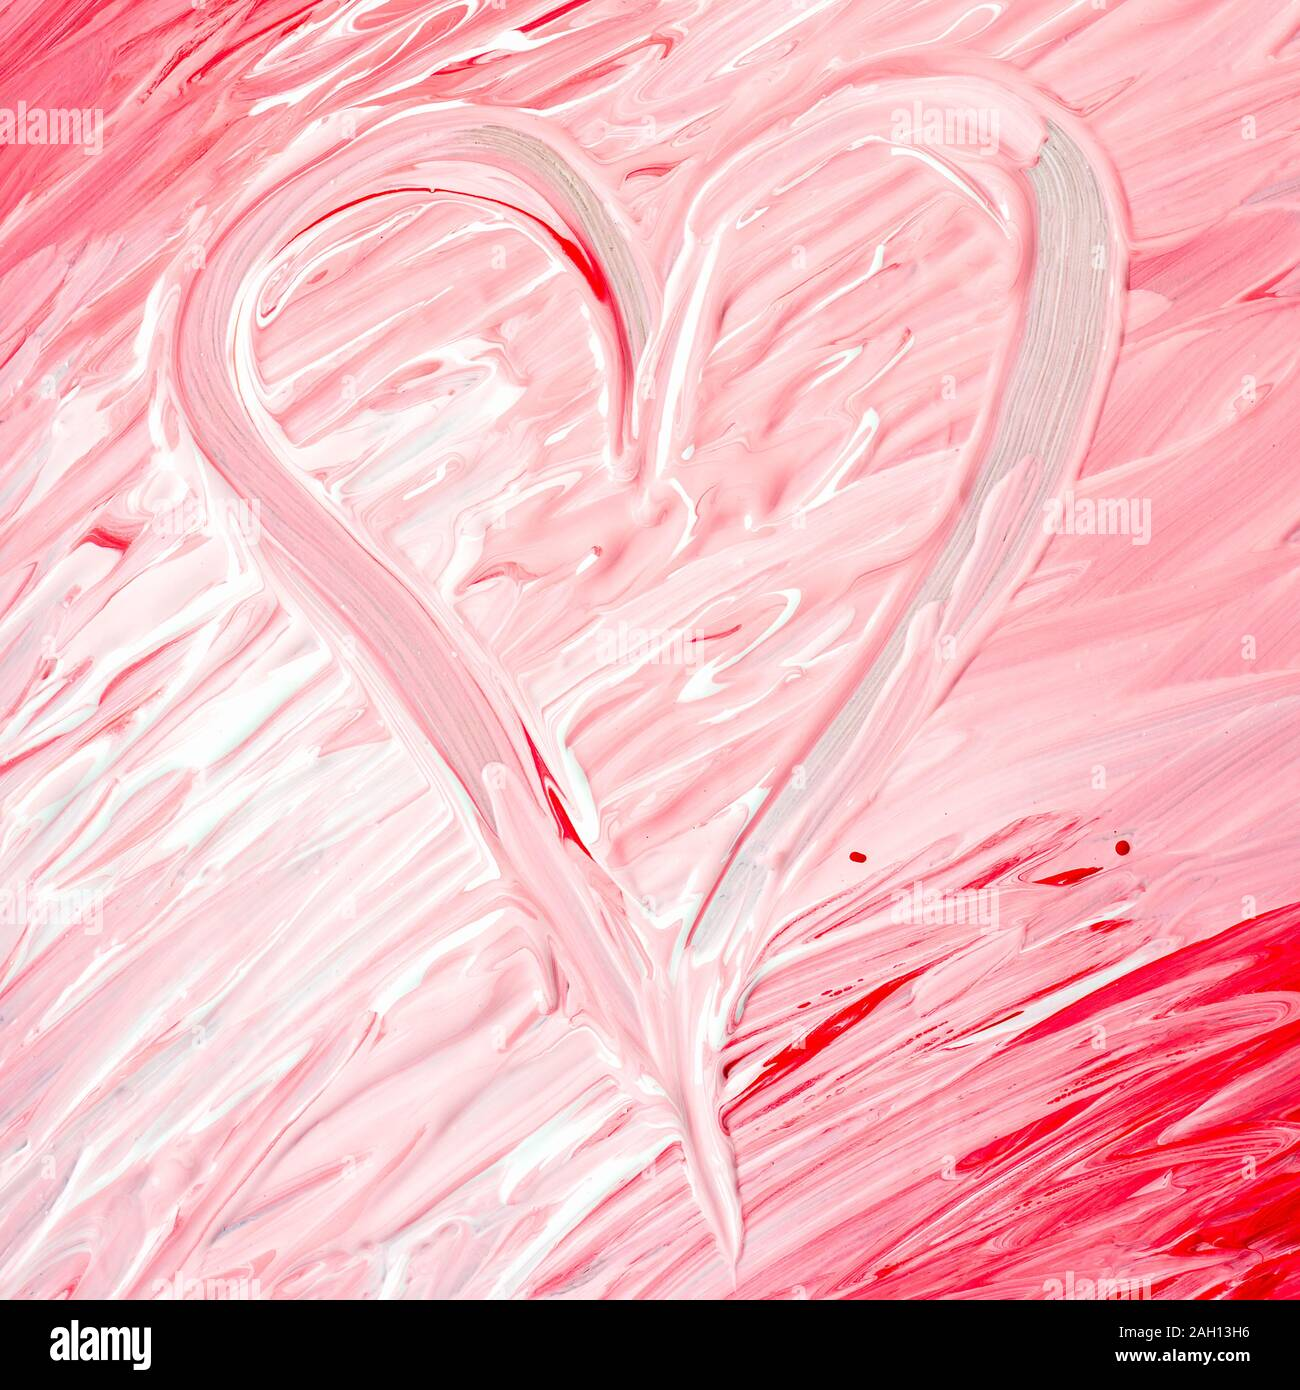 Marble And Liquid Abstract Background With Oil Painting Heart Shape Made With Red Pink And White Color Stock Photo Alamy